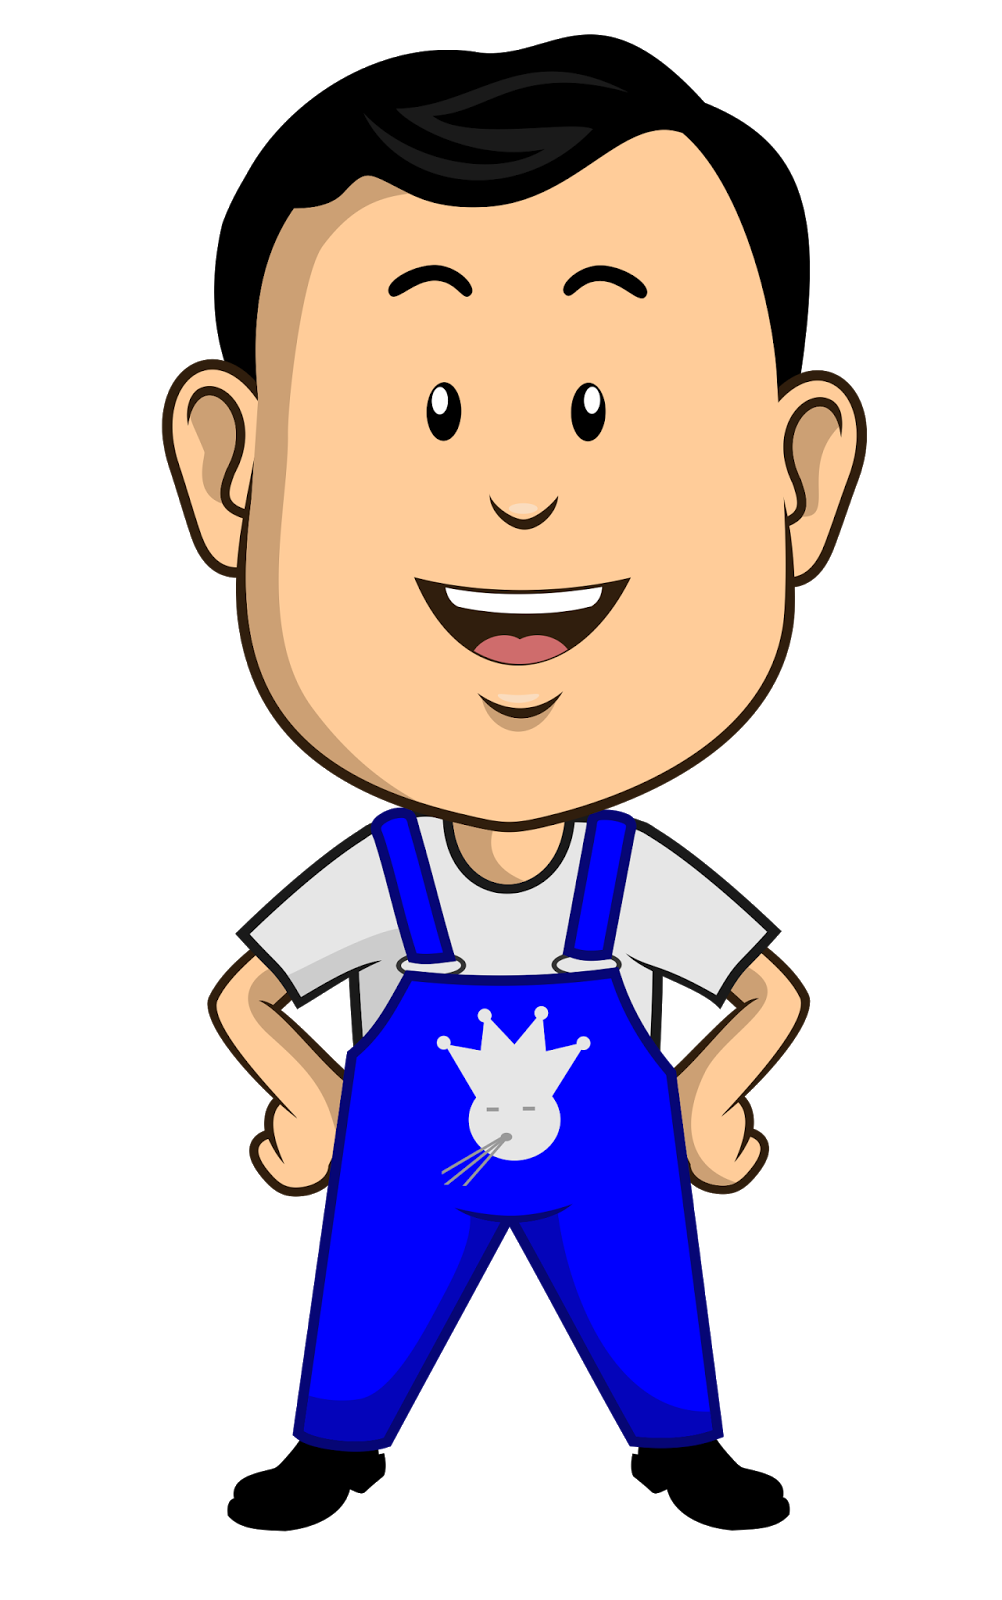 Aaa duct cleaning llc. Contractor clipart maintenance